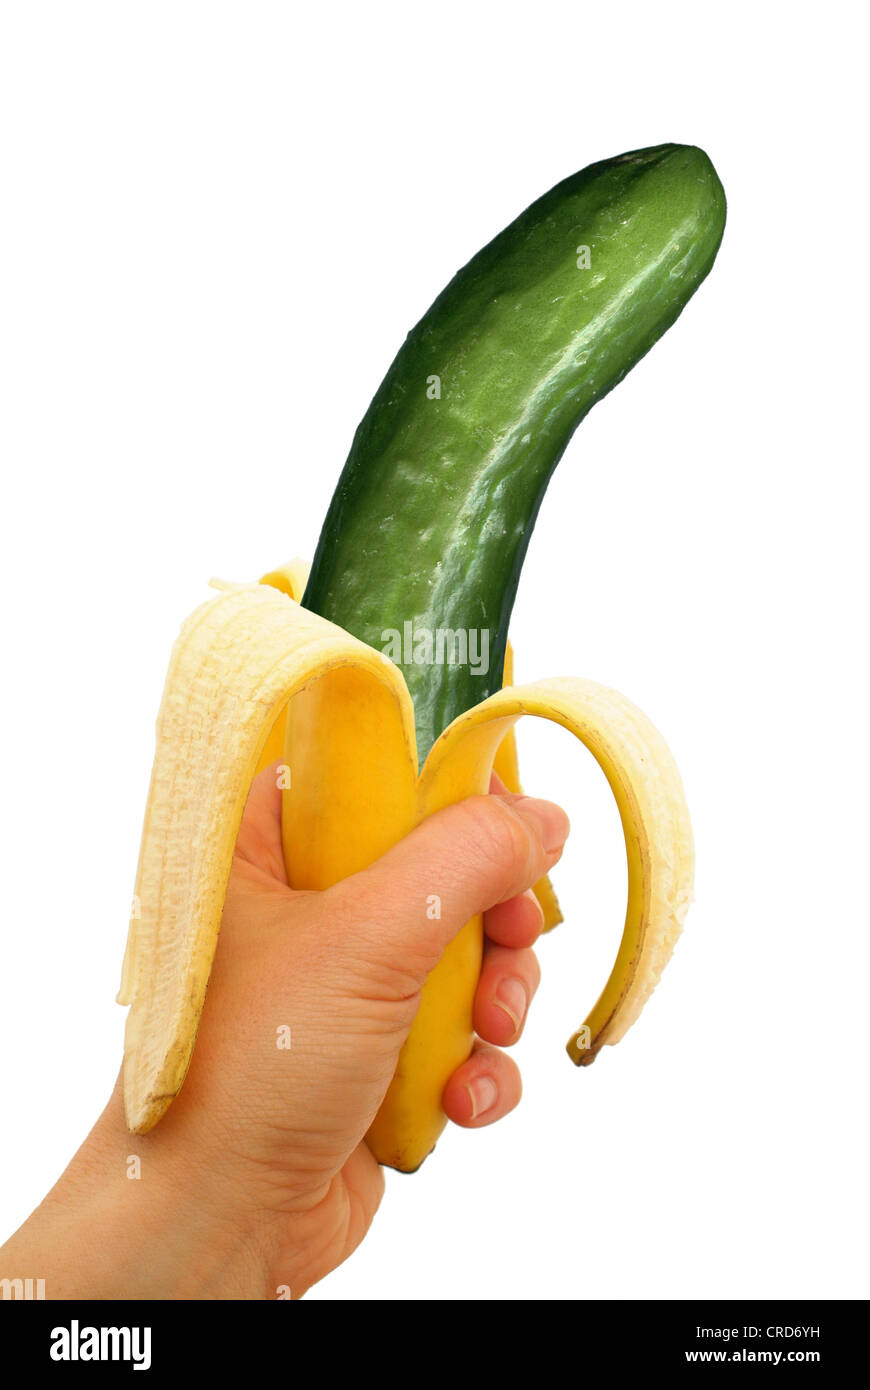 symbolic for genetically modified food, cucumber in banana peel Stock Photo